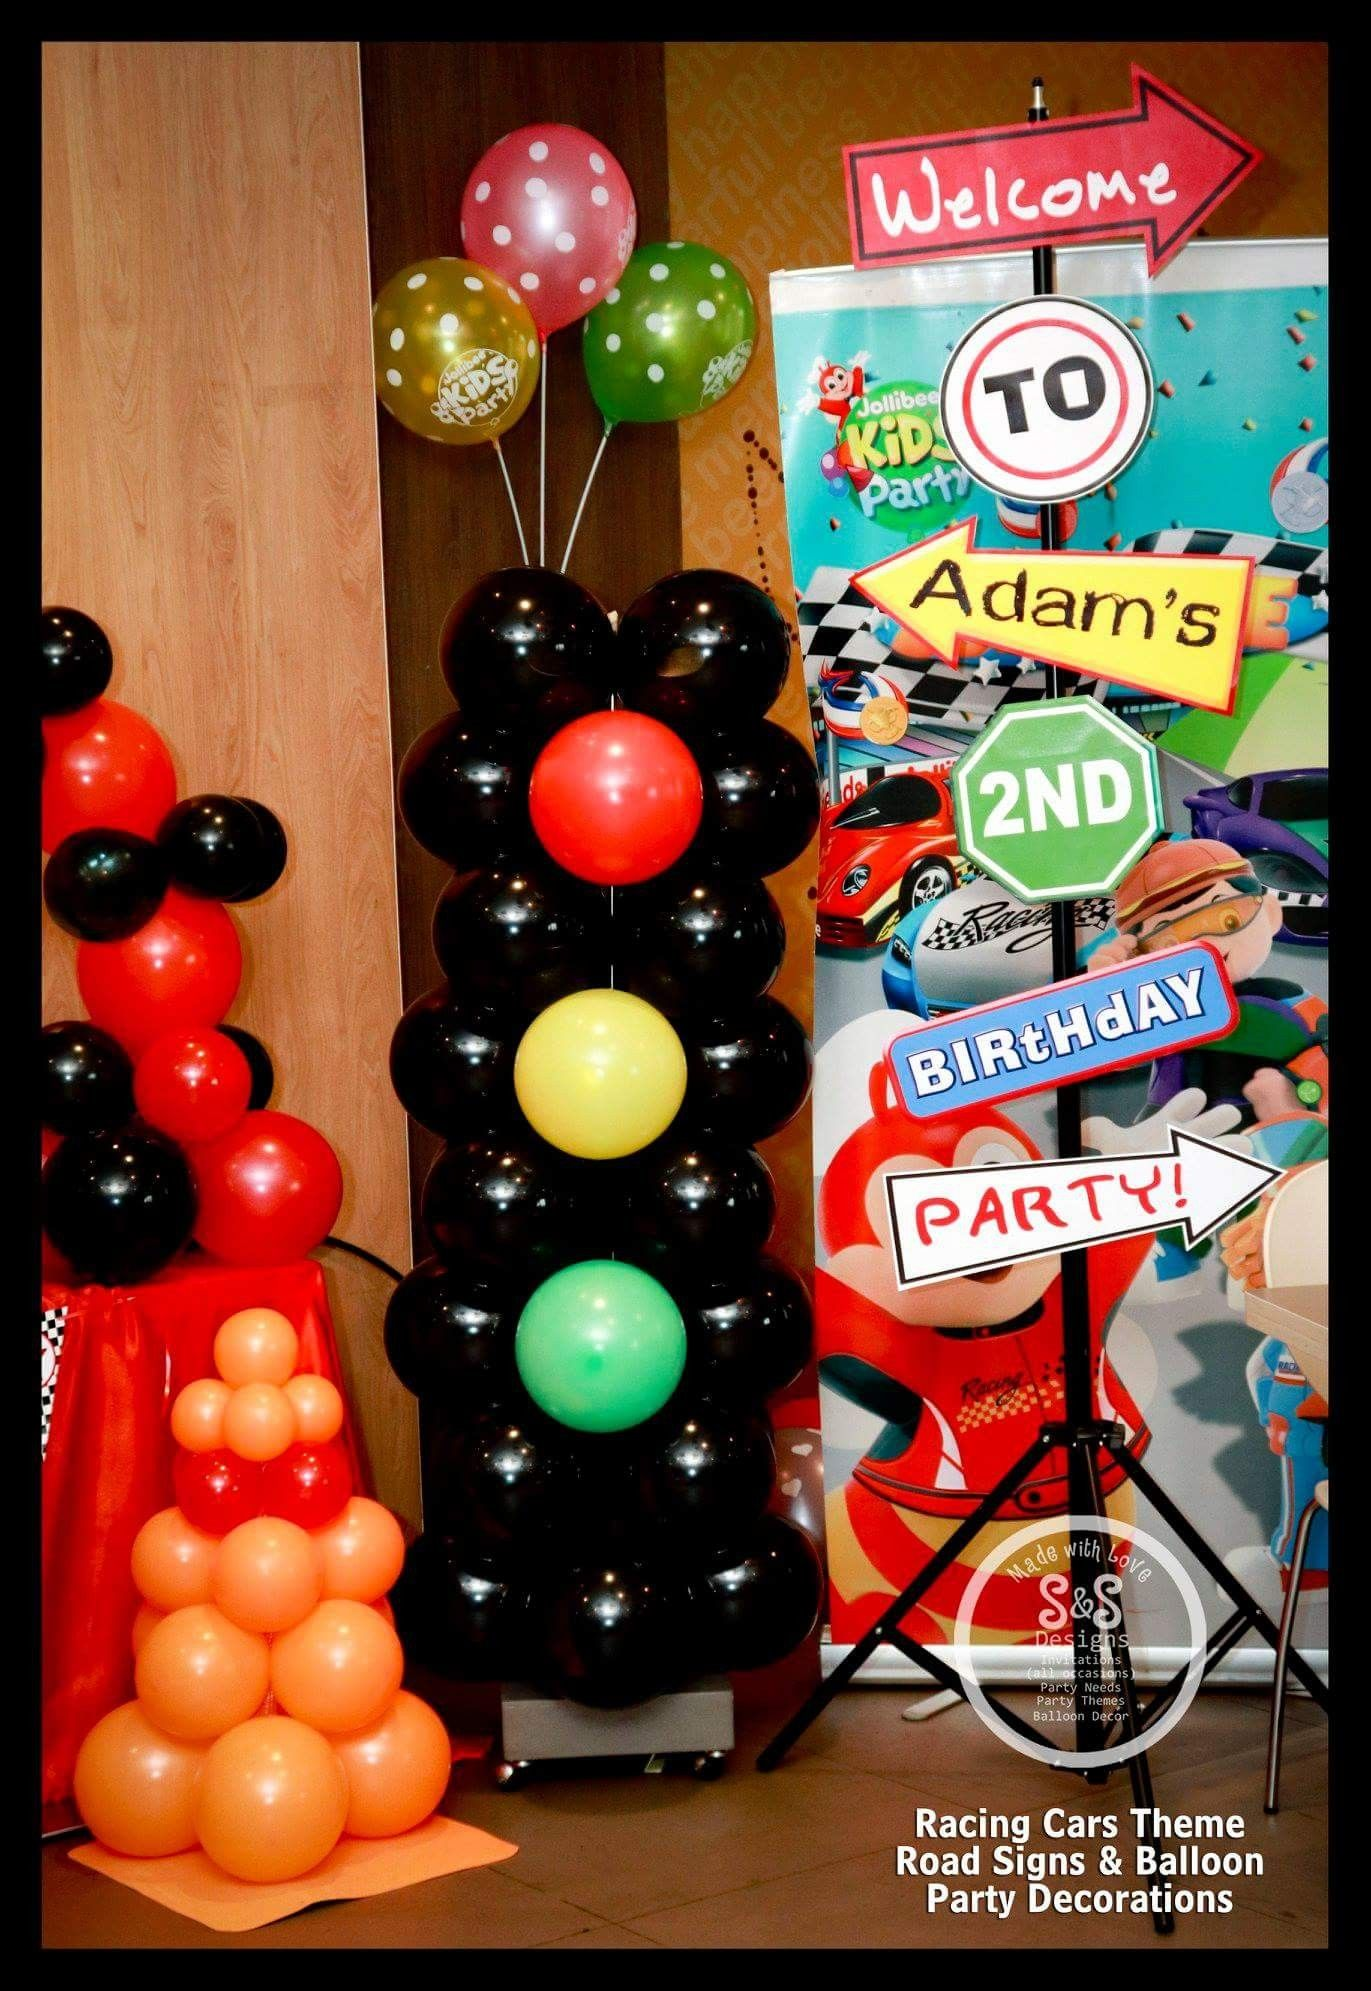 Racing Cars Party Decorations